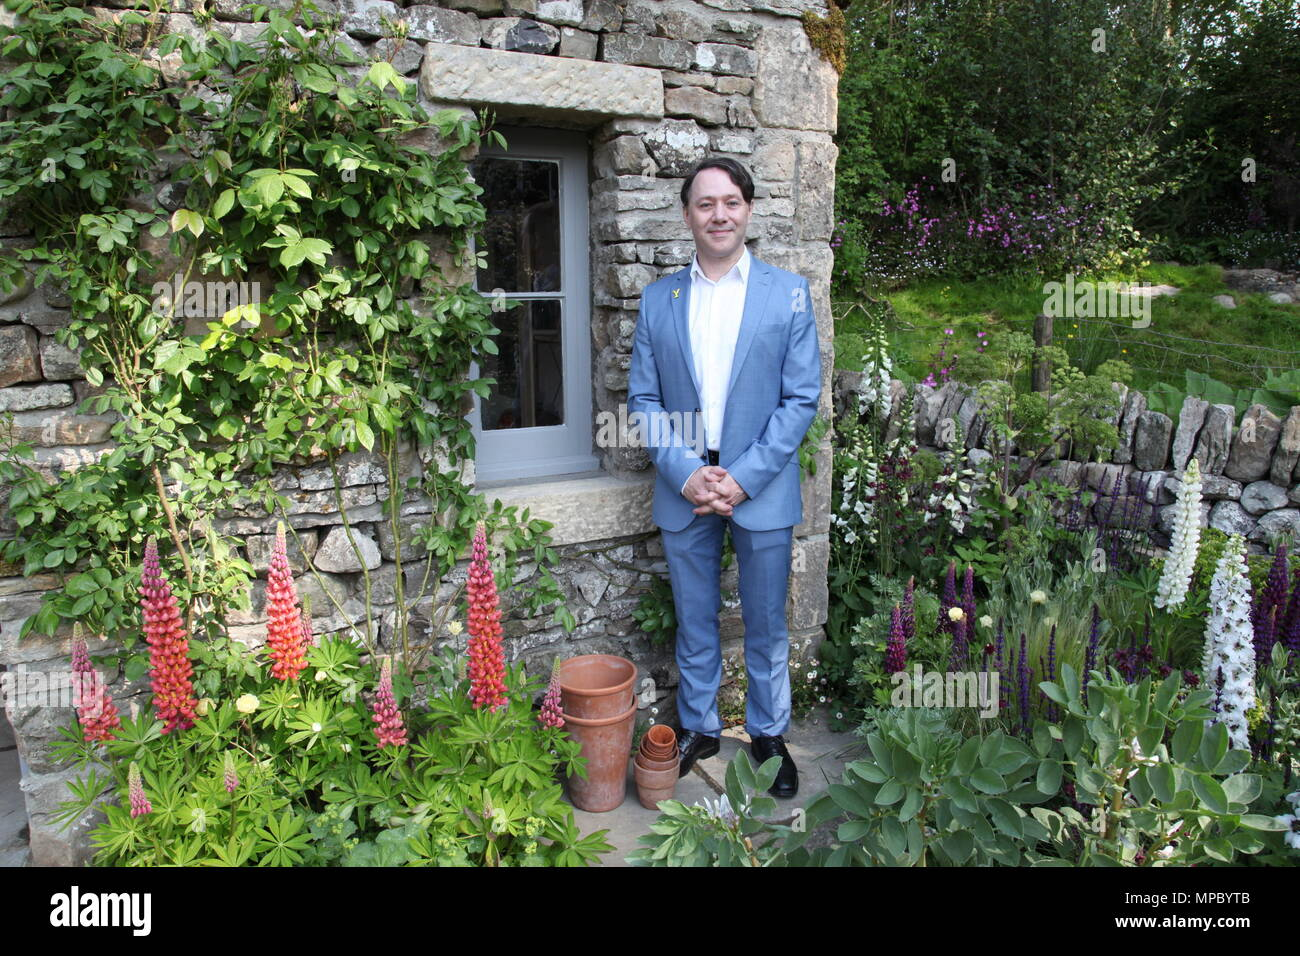 Chelsea, London, UK. 21st May, 2018. Chelsea, London, UK. 21st May 2018. Reece Shearsmith on the Welcome to Yorkshire garden at Chelsea Flower Show 2018, designed by Mark Gregory for Landformconsultants.co.uk Credit: Jenny Lilly/Alamy Live News - Stock Image